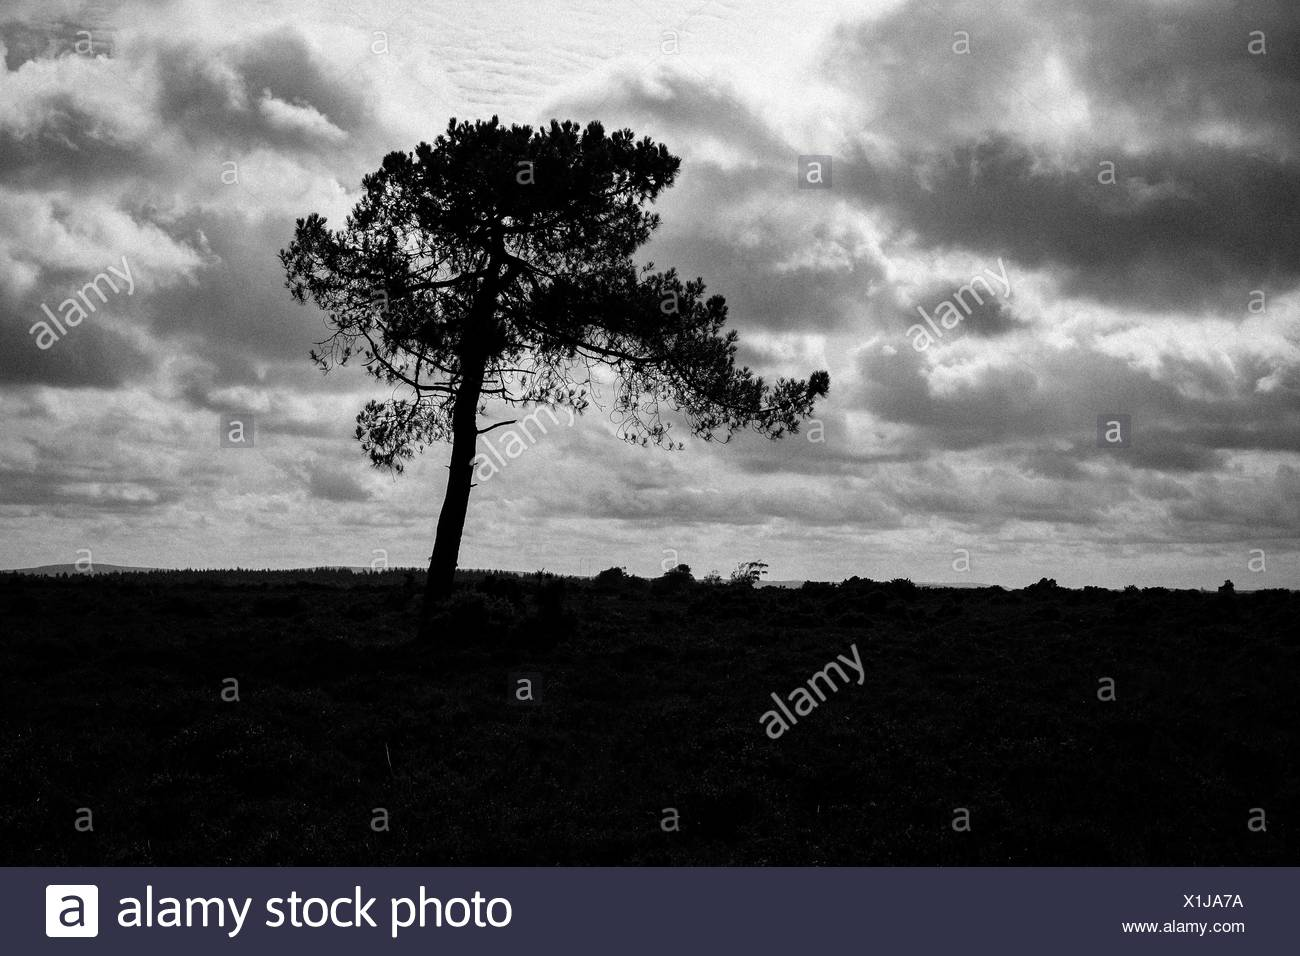 Lone Pine Tree Growing In Grassy Area - Stock Image